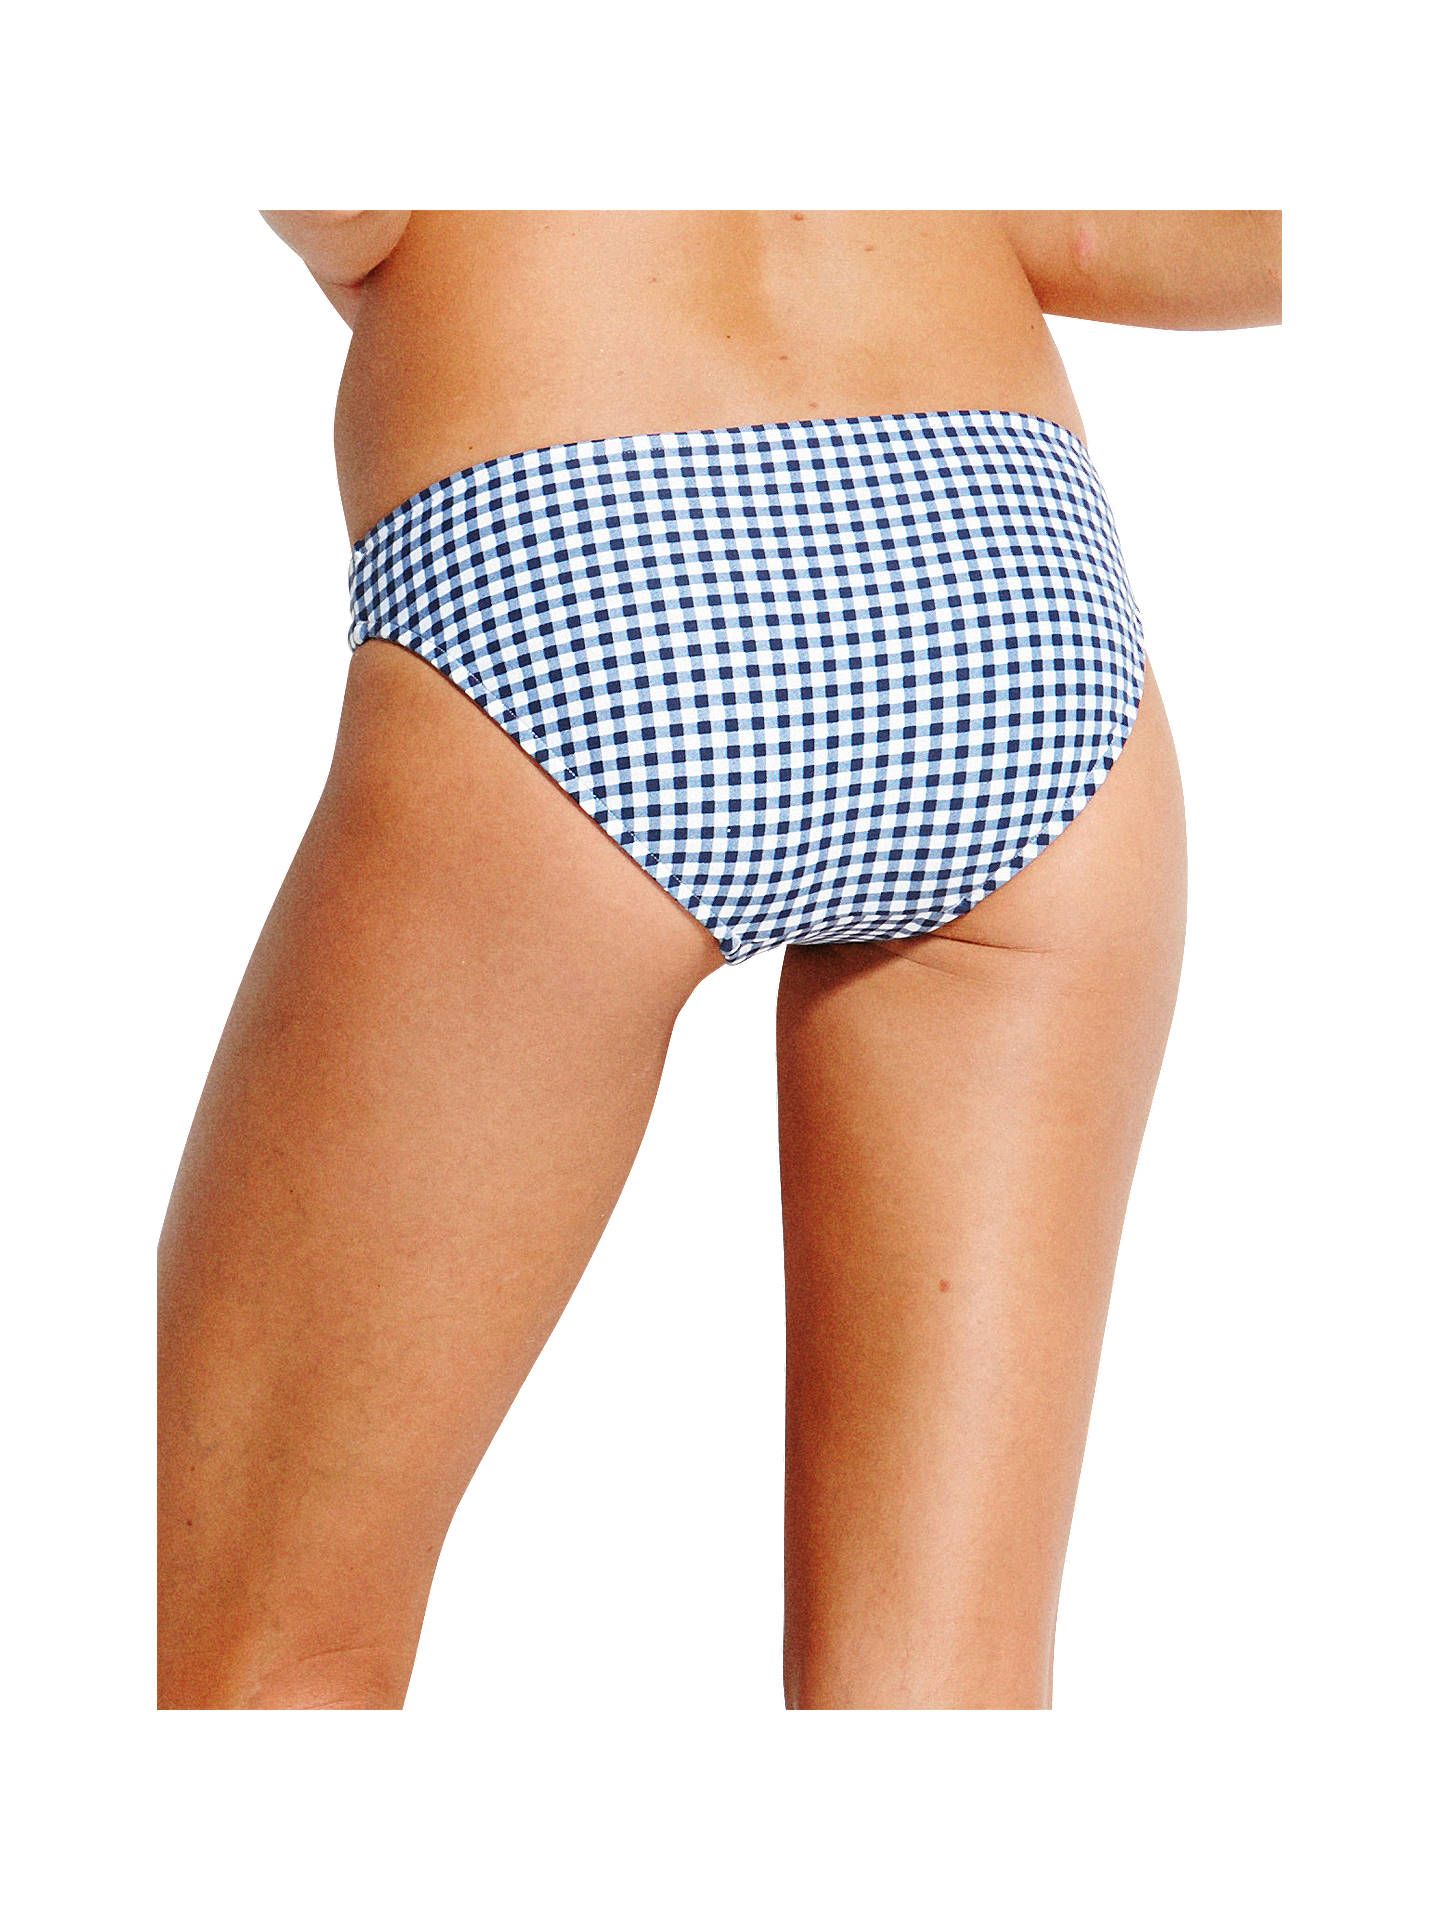 BuySeafolly Capri Check Hipster Bikini Briefs, Blue, 8 Online at johnlewis.com